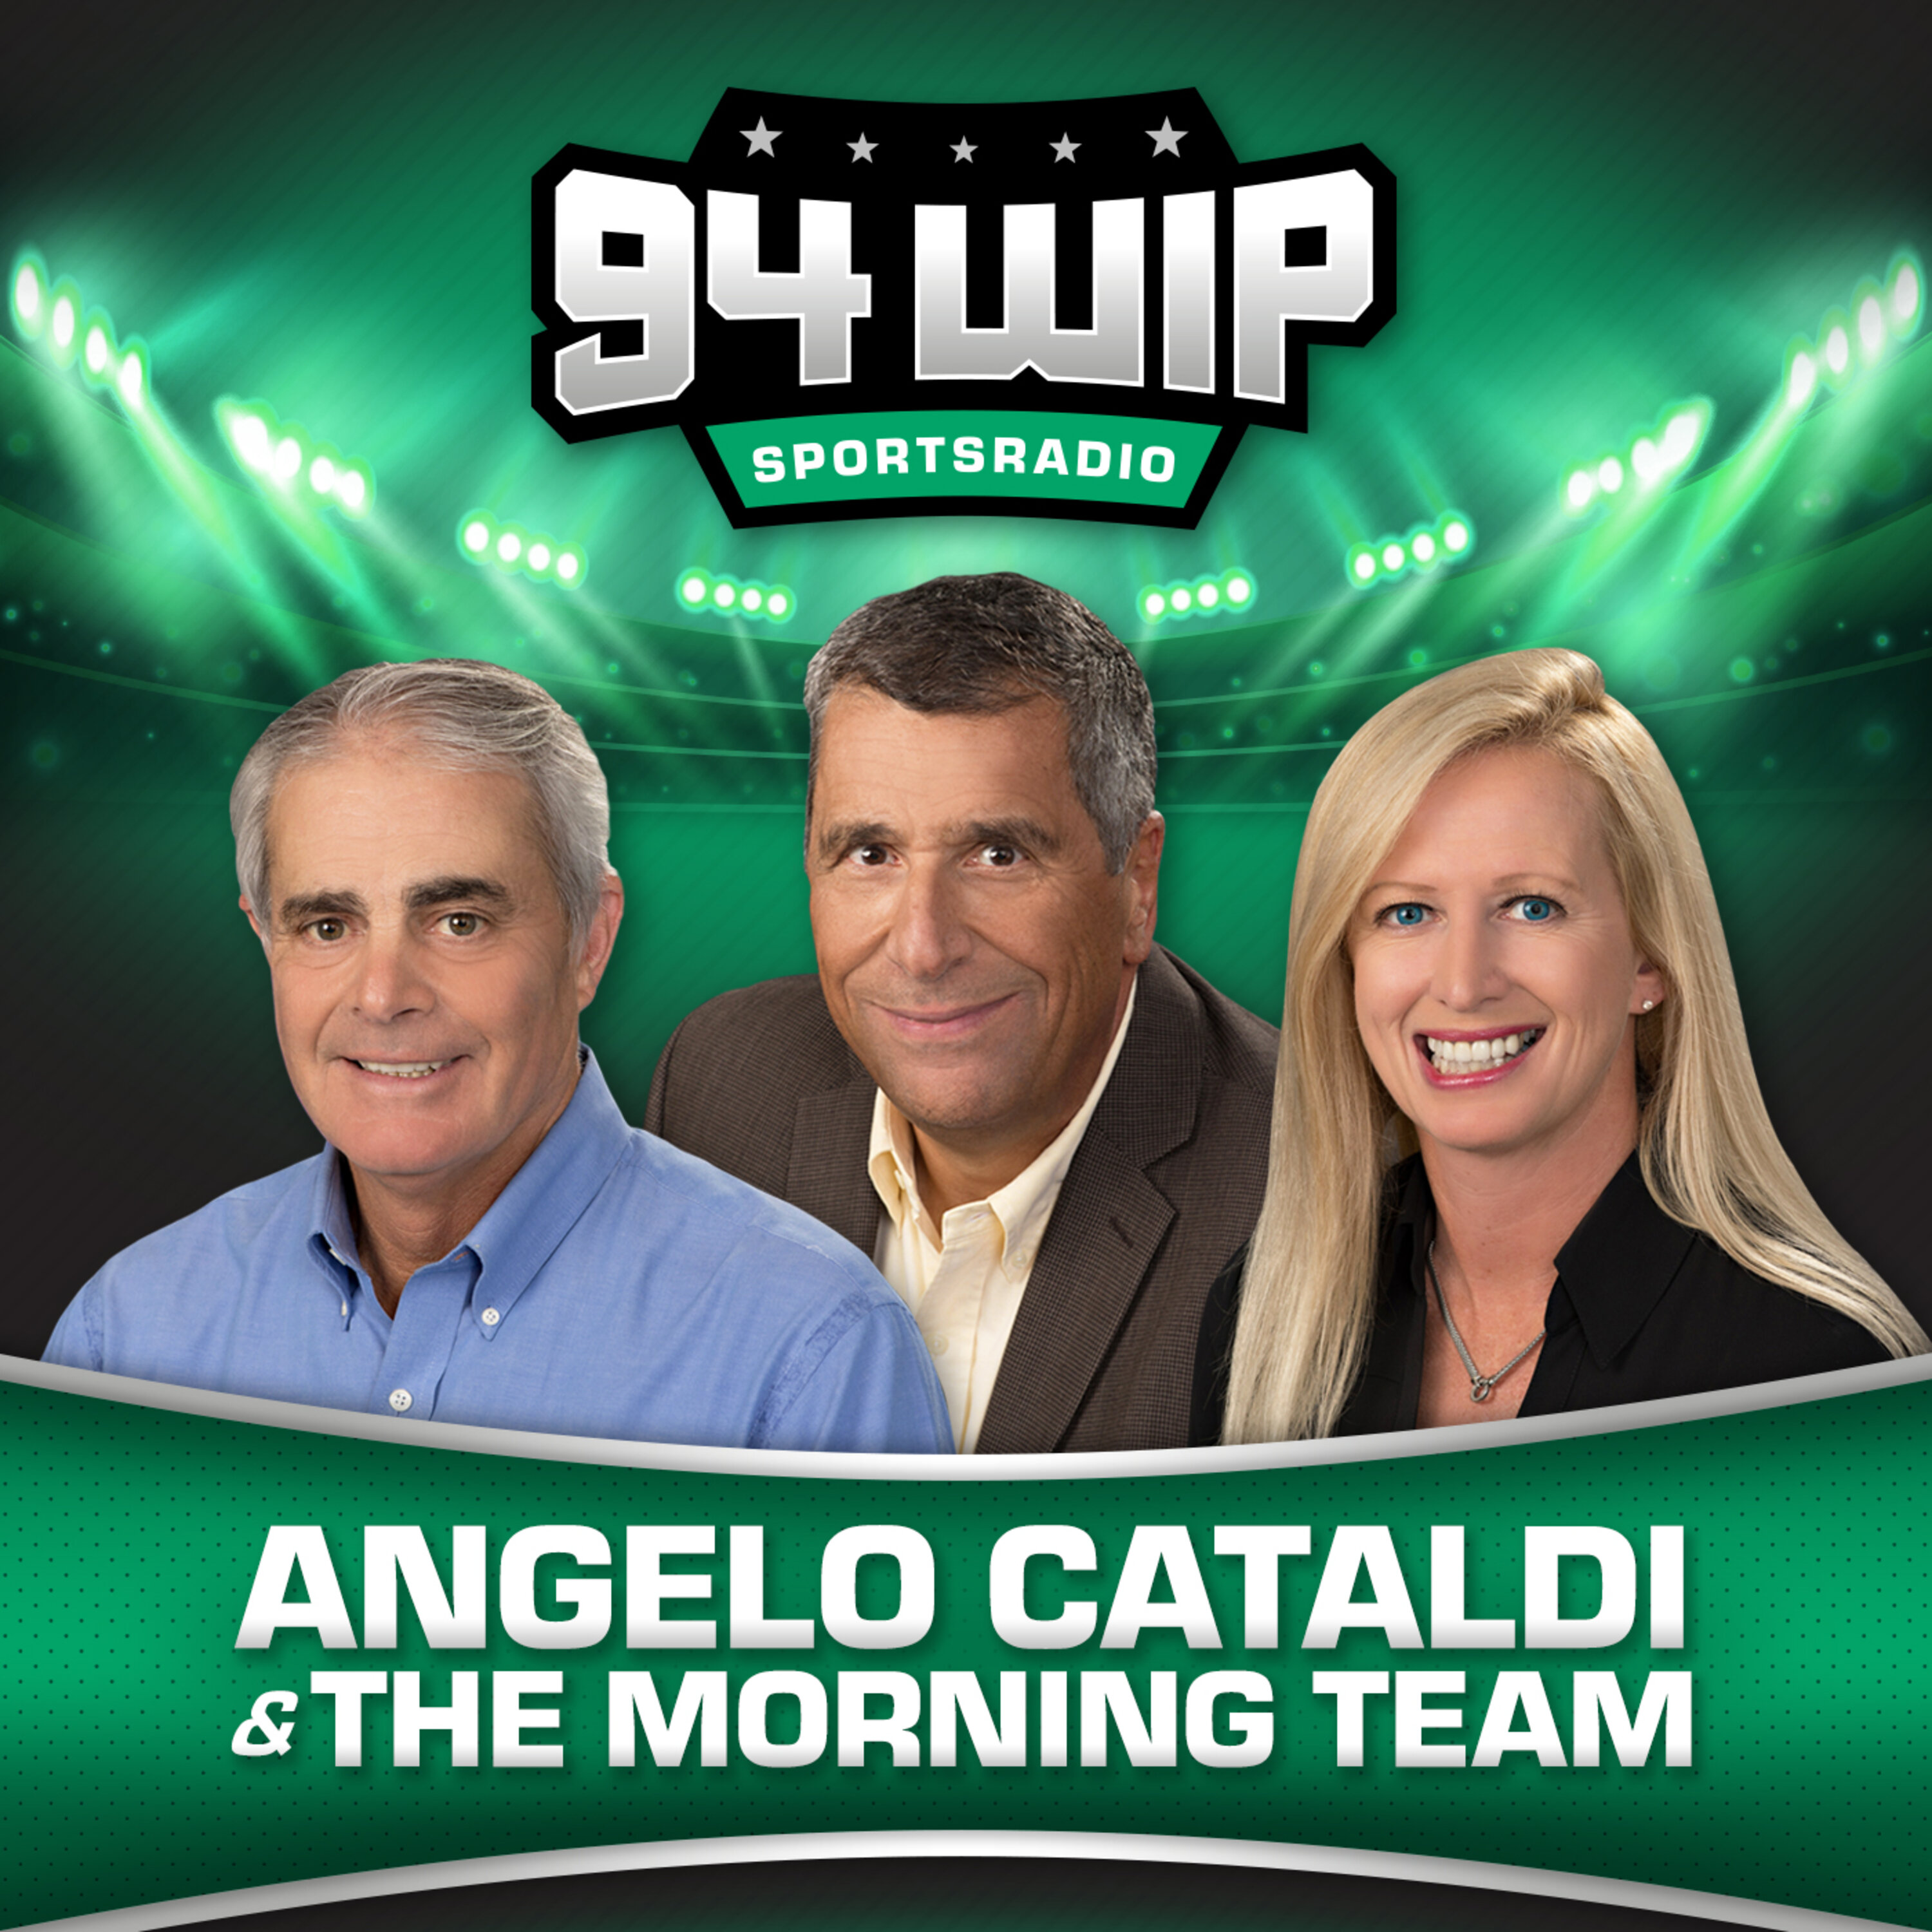 Angelo Cataldi And The Morning Team Logo